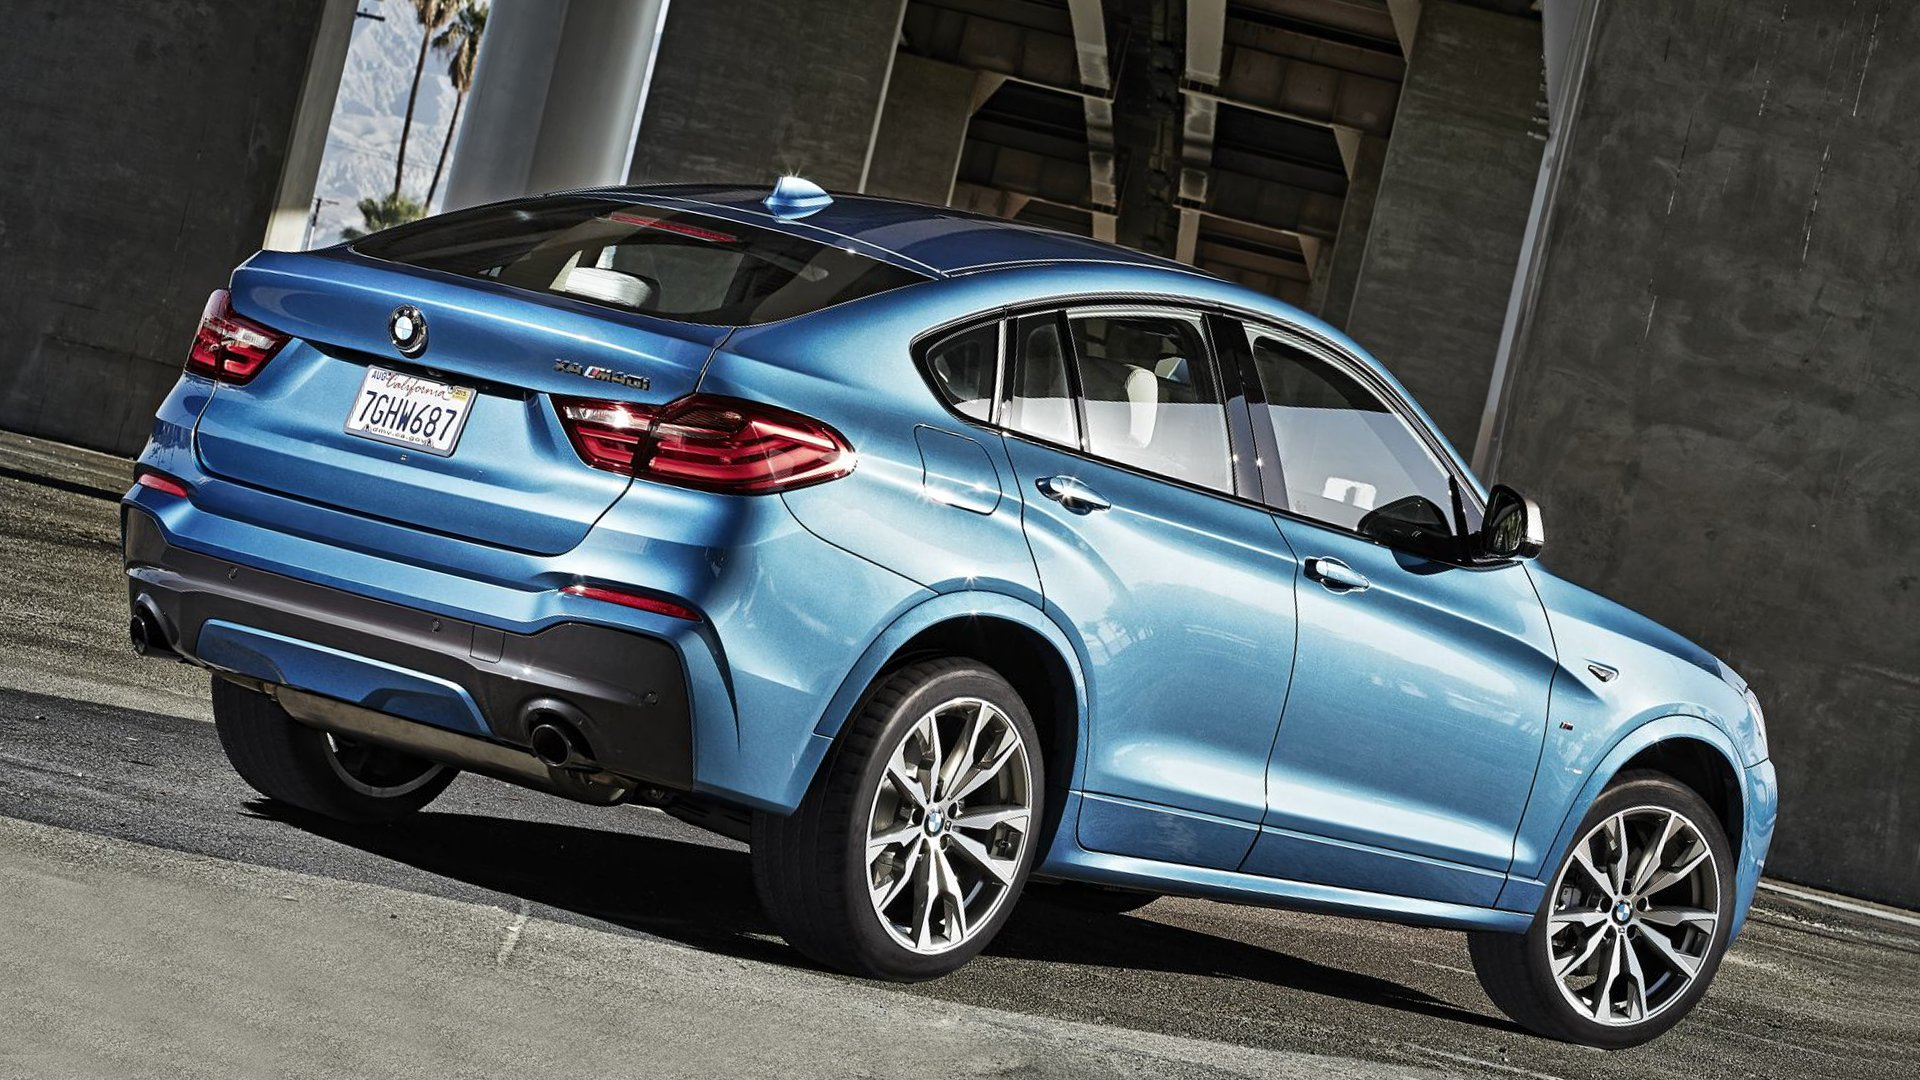 2018 Back View BMW X4 M40i Full HD